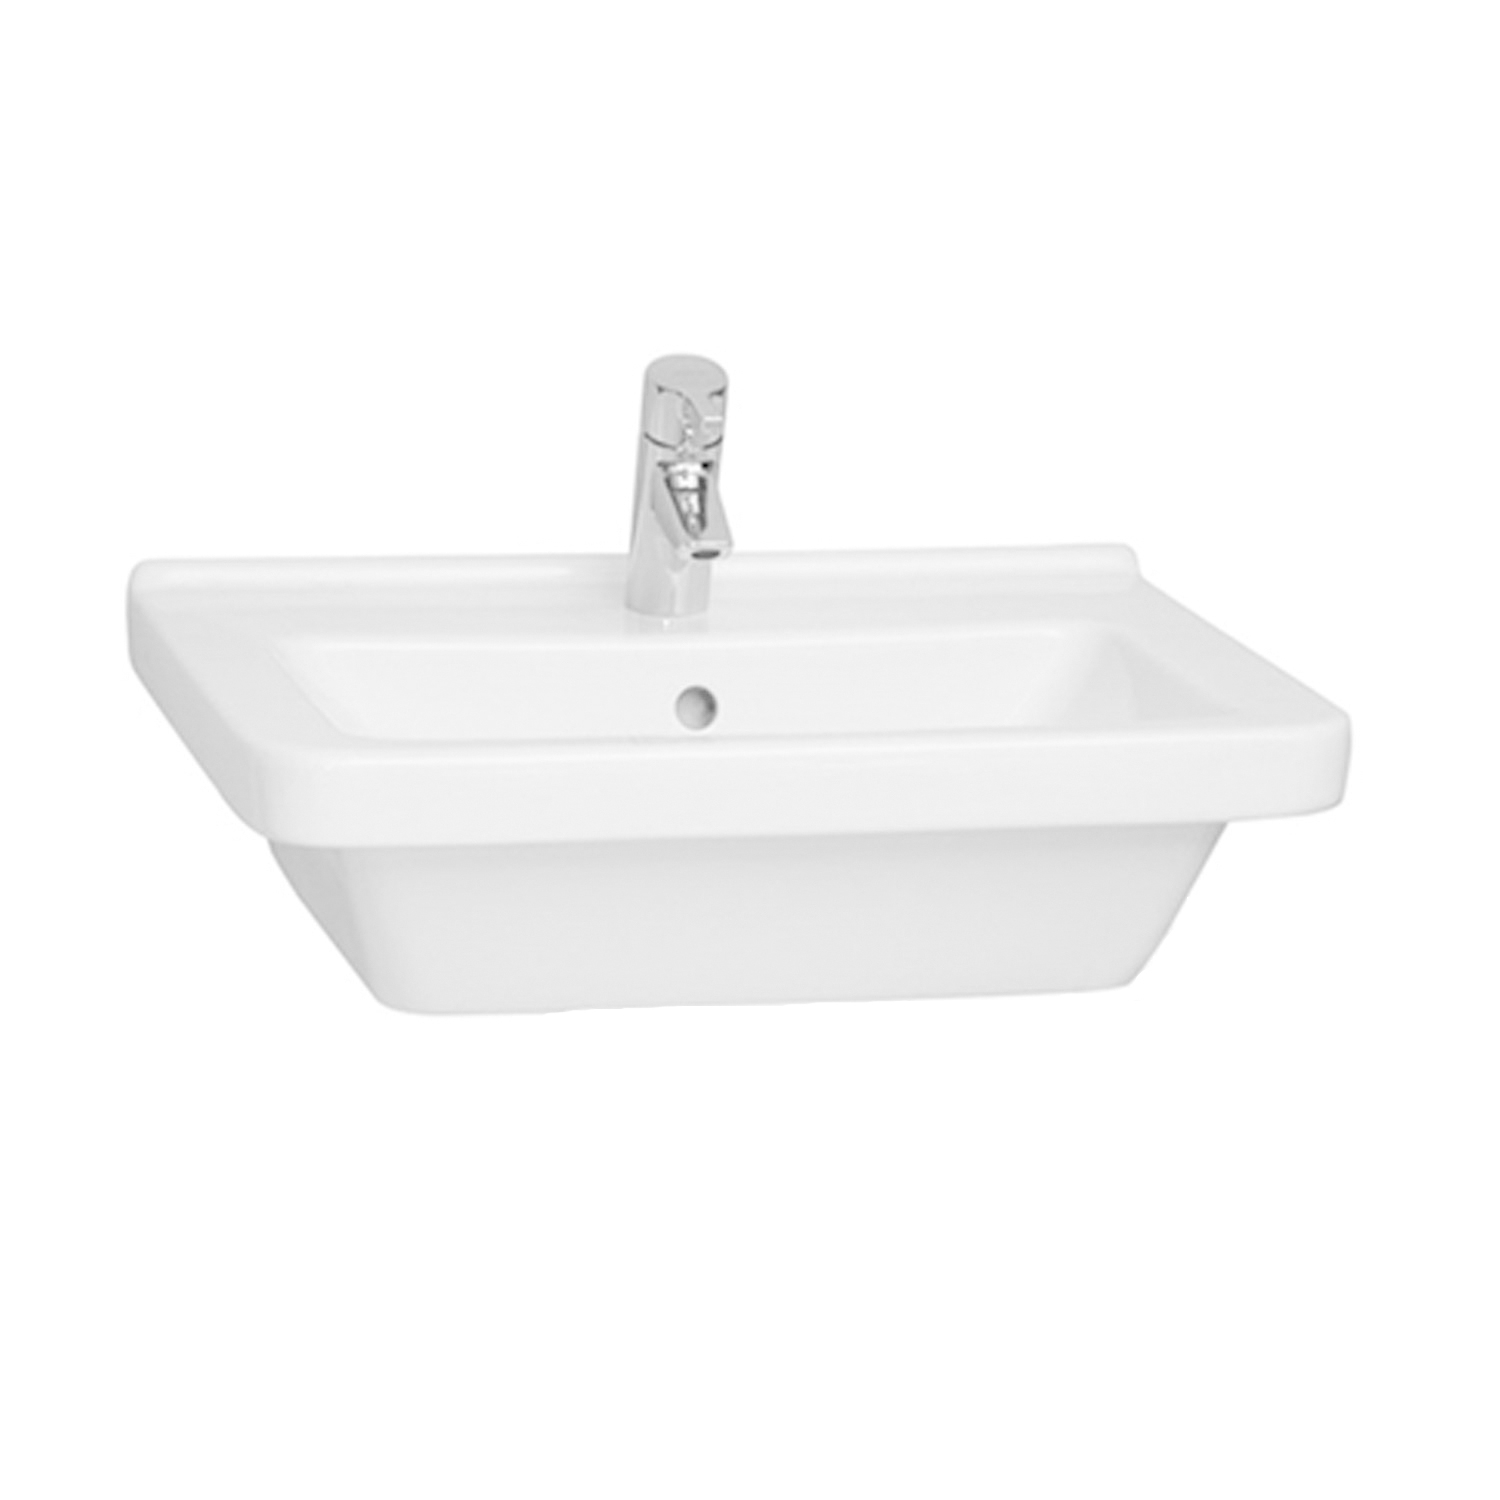 Vitra S50 Square Basin and Full Pedestal 650mm 1 Tap Hole